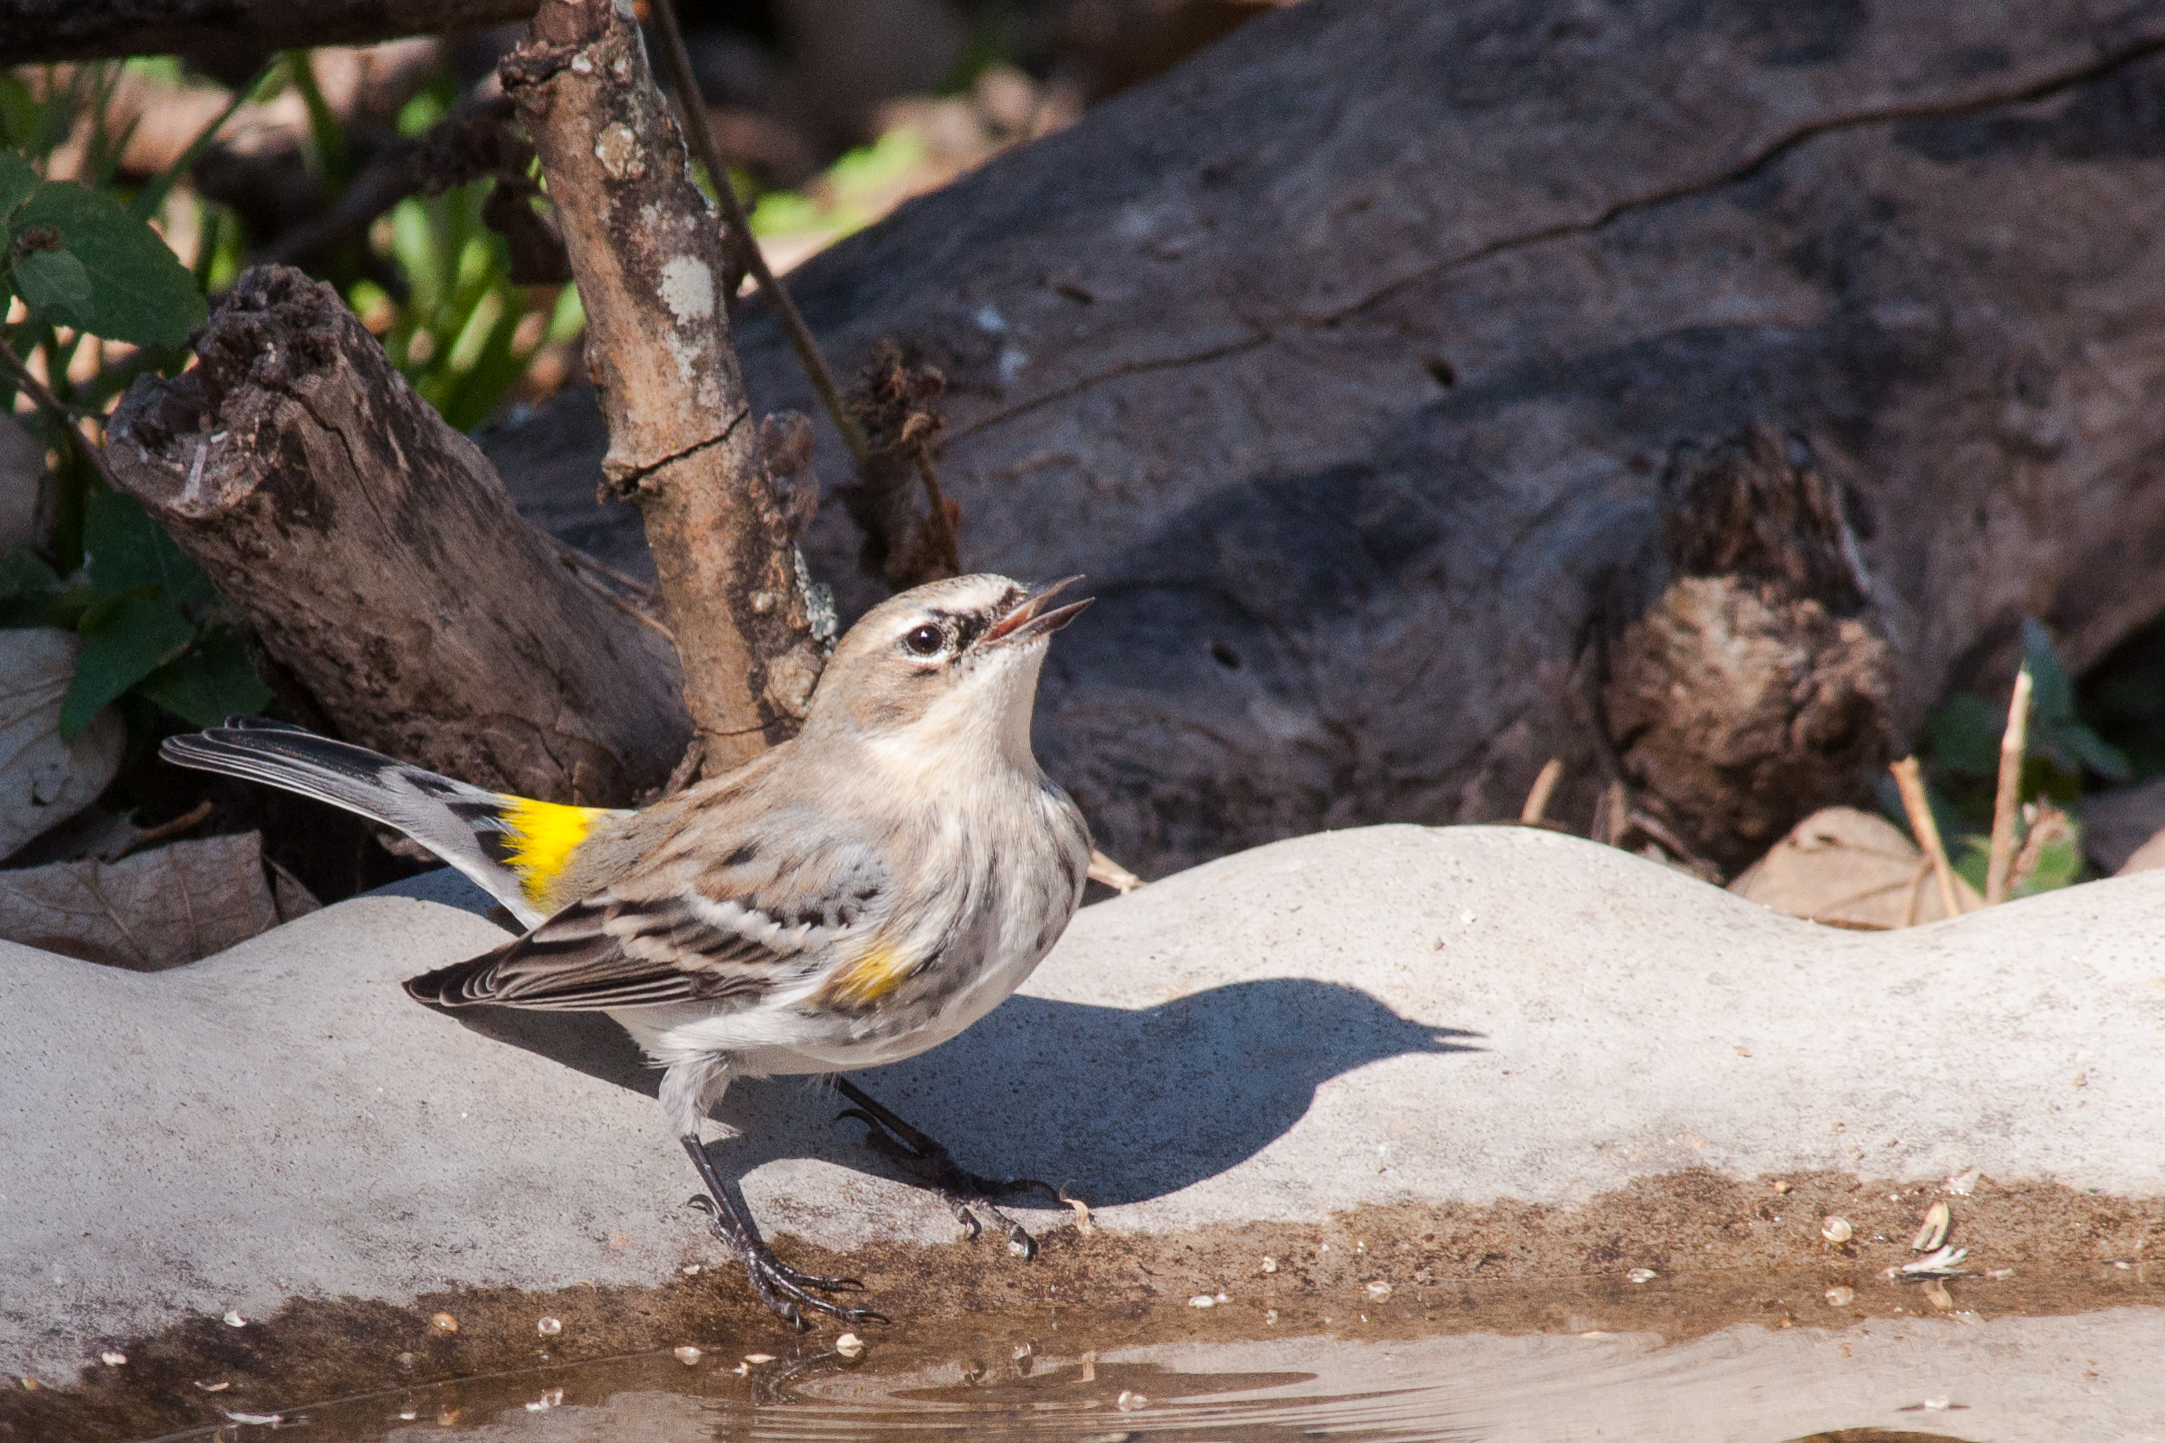 Species: Yellow-rumped Warbler Photo Credit:Alyssia Church Date: January 2017 Location: Crescent Bend Nature Park